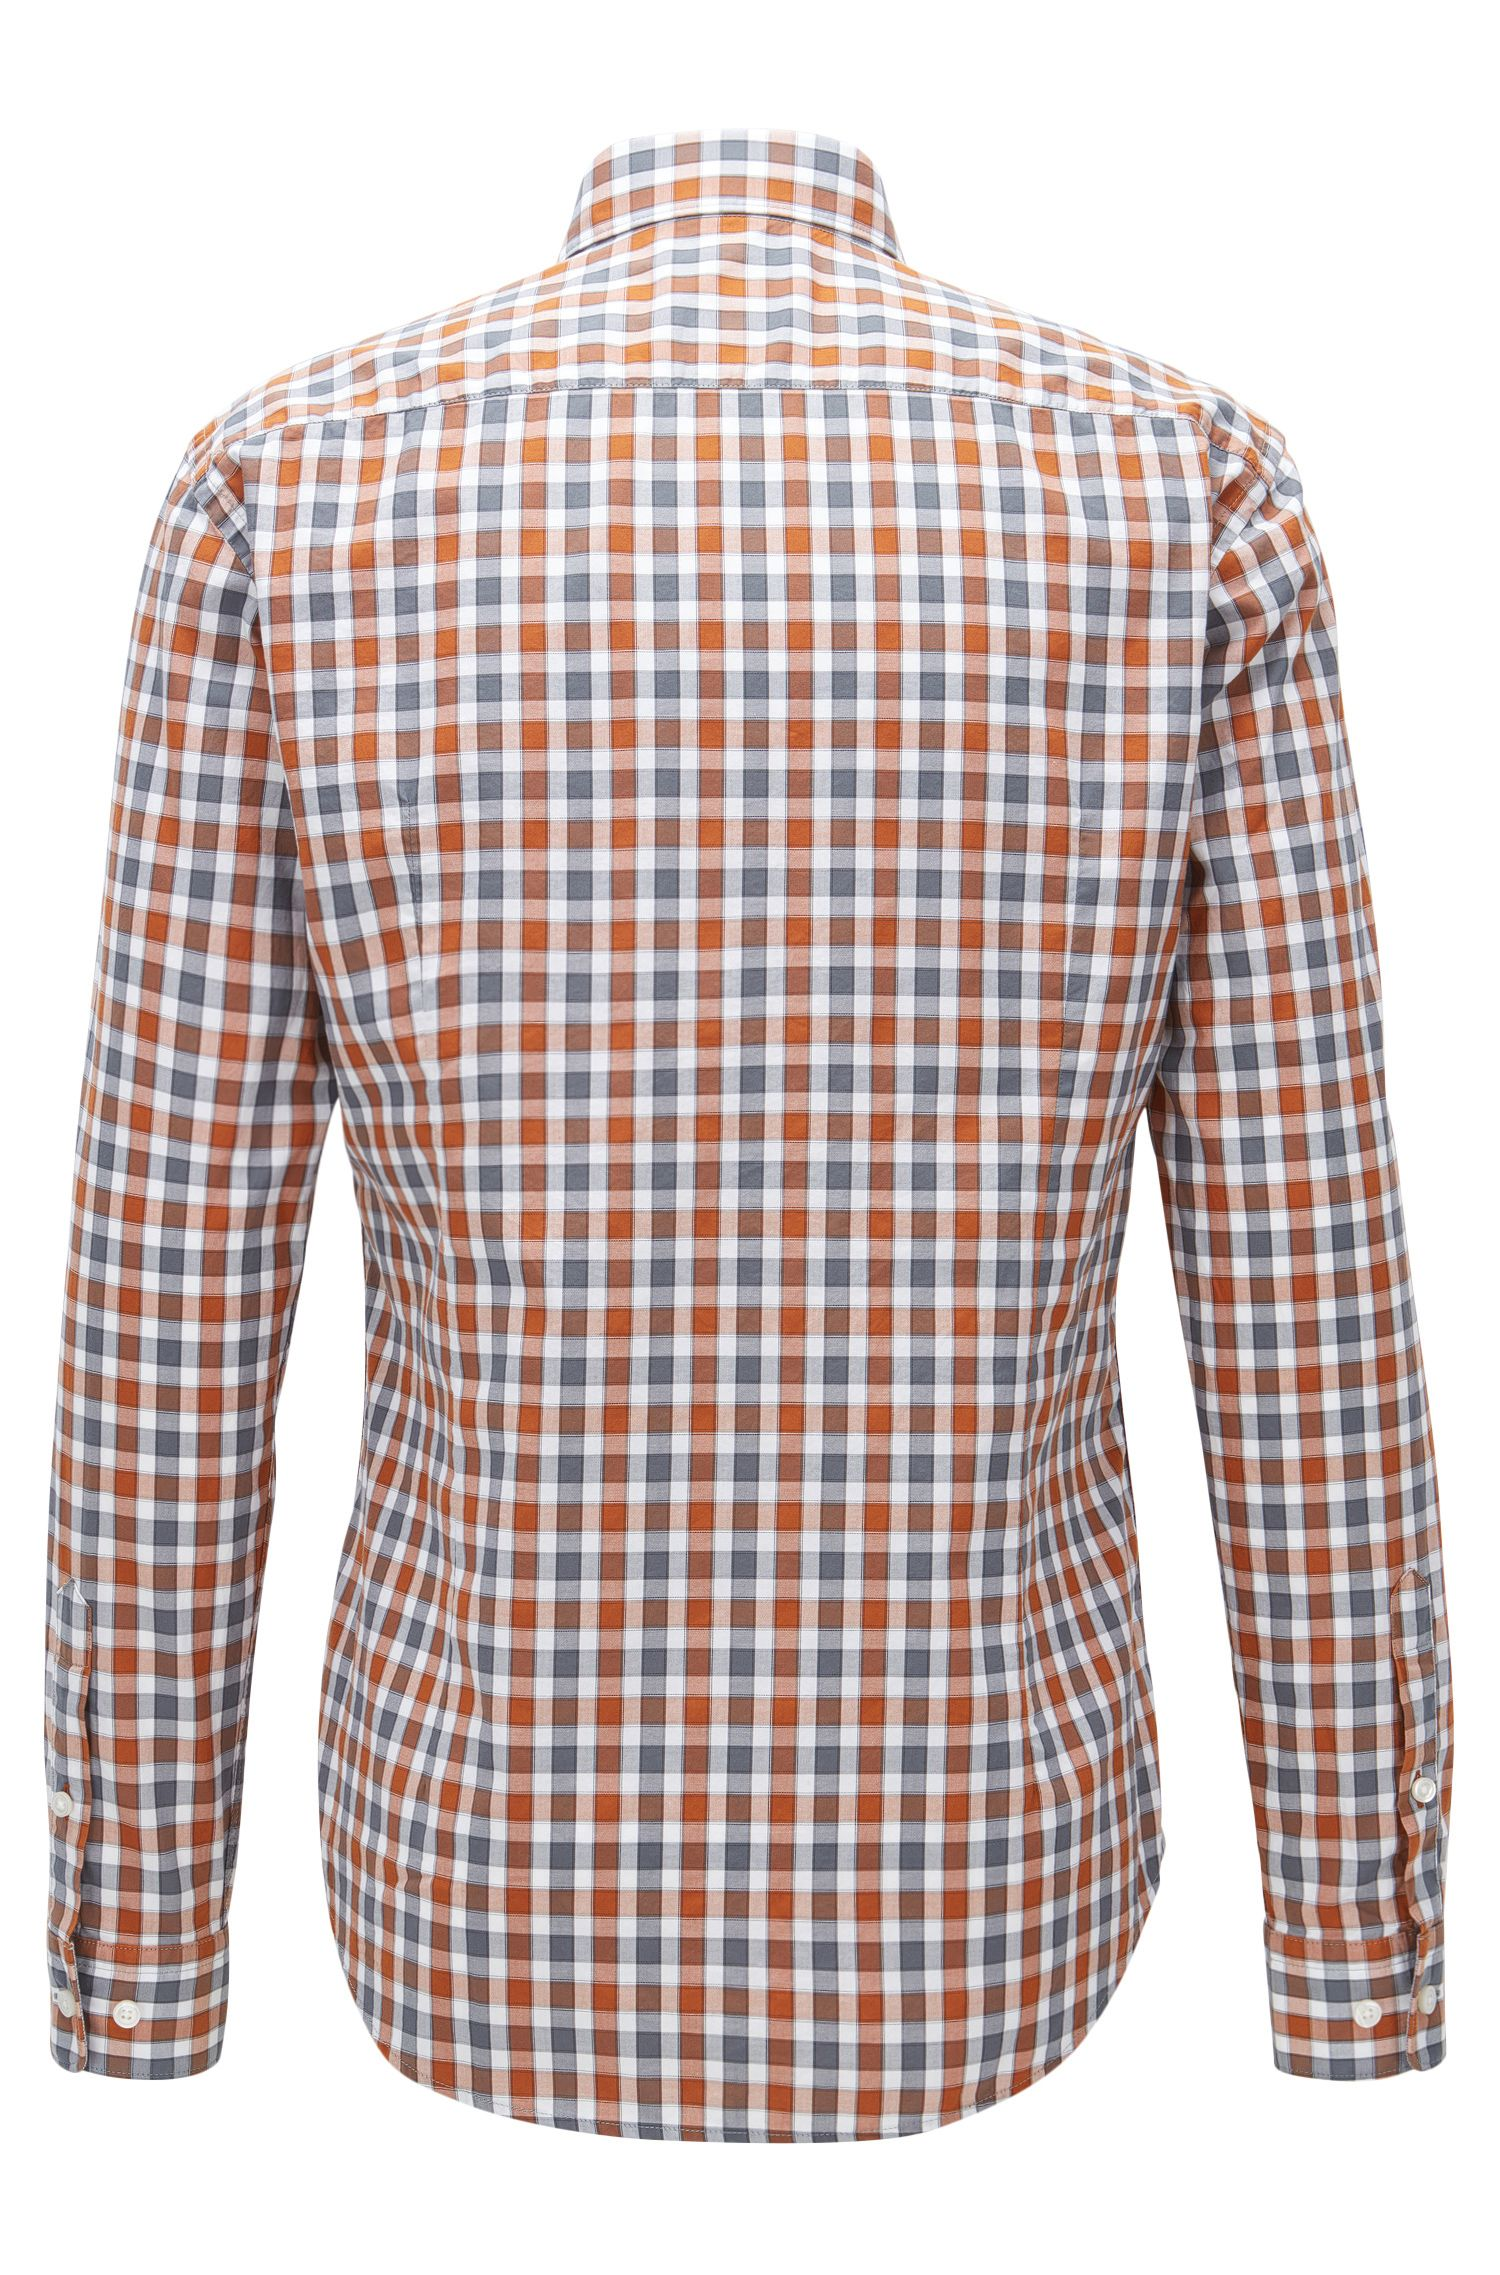 Plaid Cotton Button Down Shirt, Slim Fit | Rod